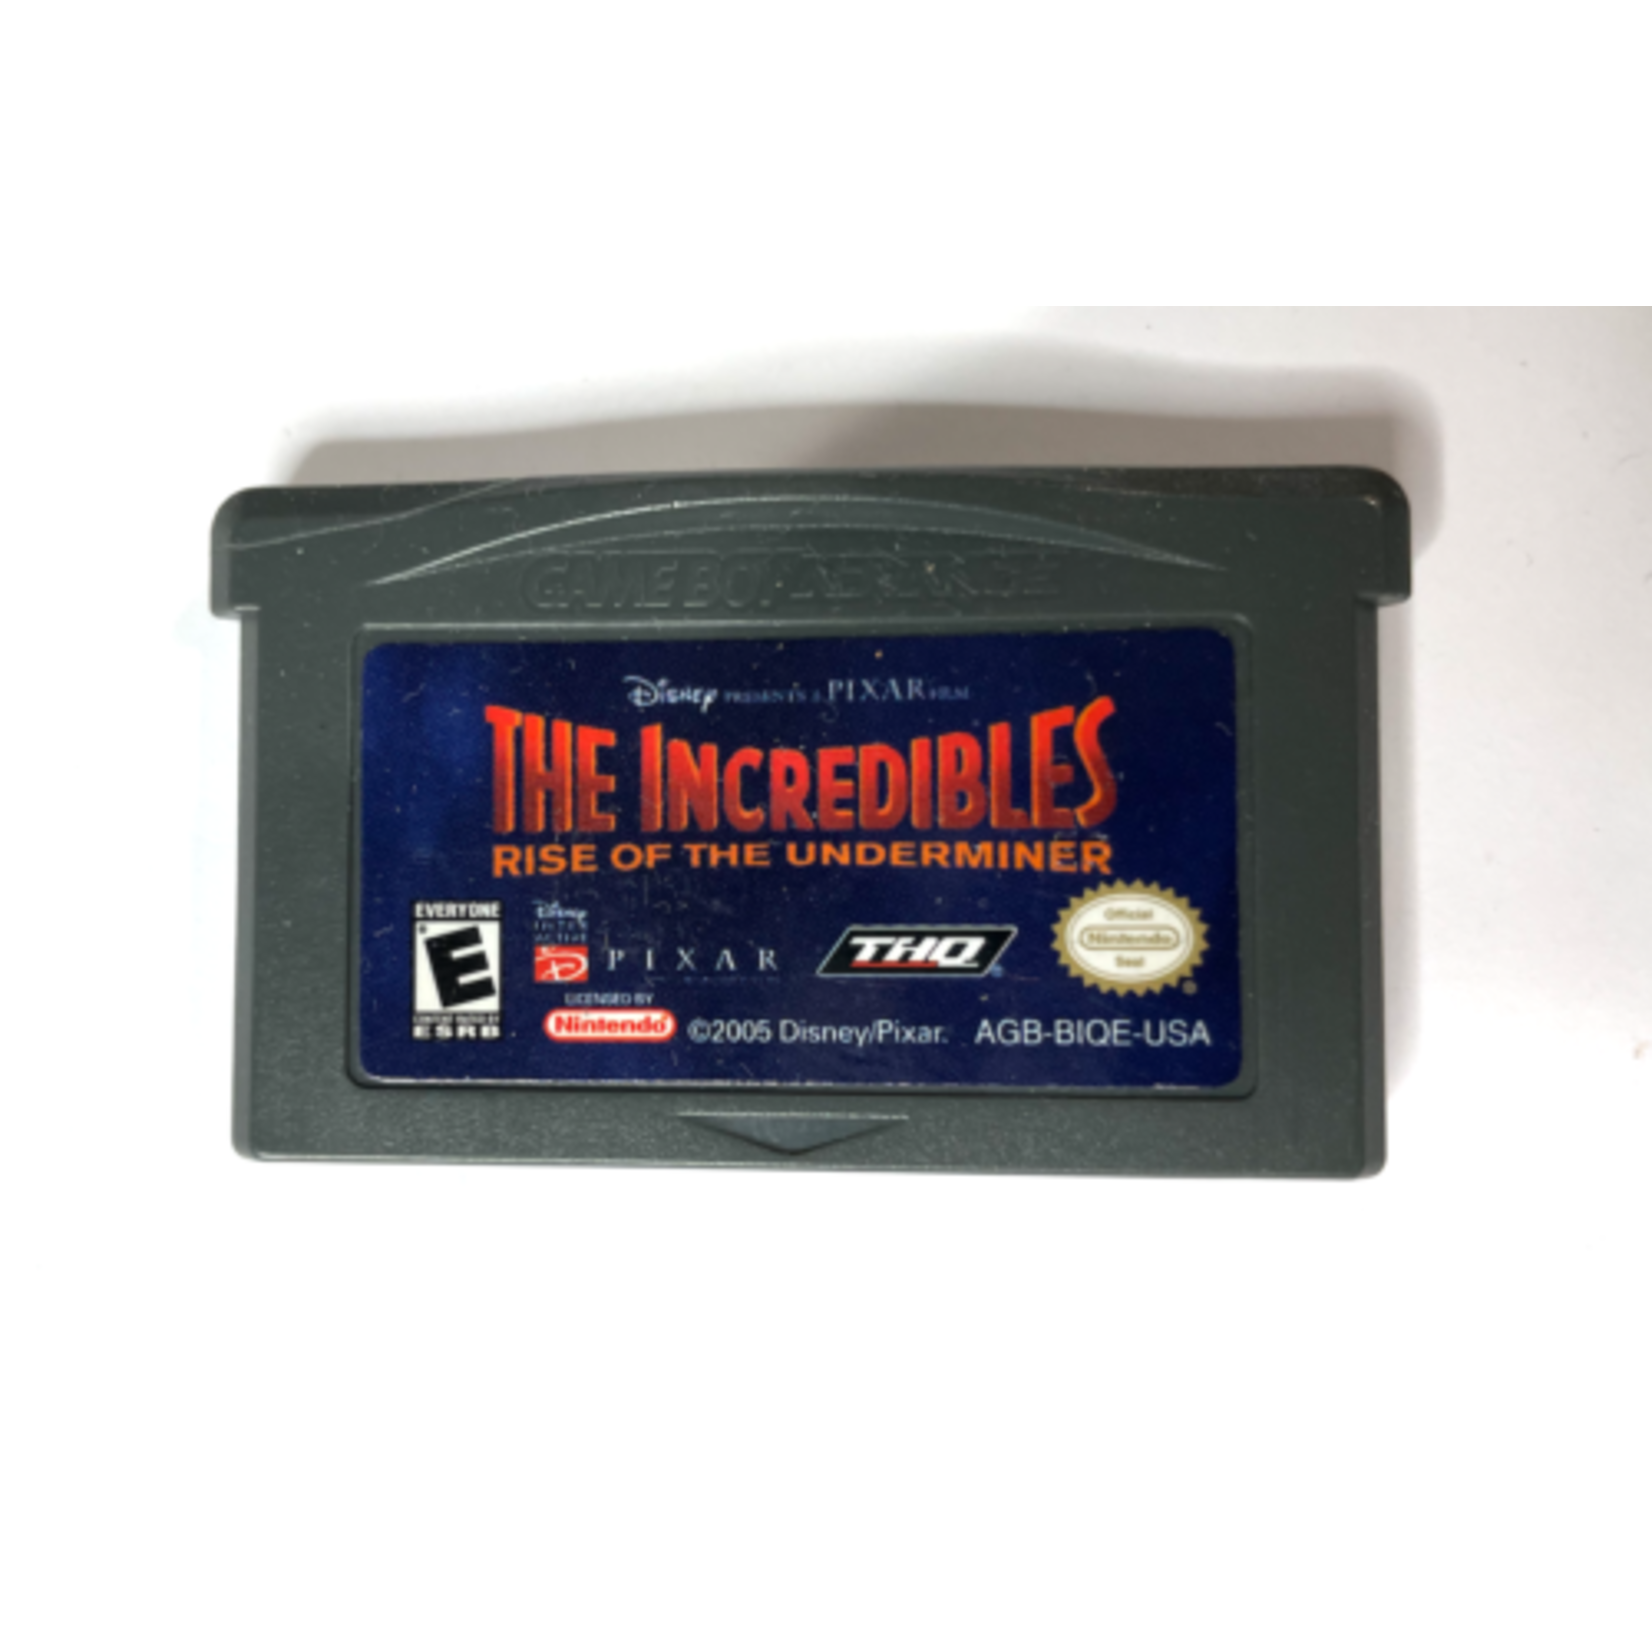 GBAU-THE INCREDIBLES RISE OF THE UNDERMINER (CARTRIDGE)